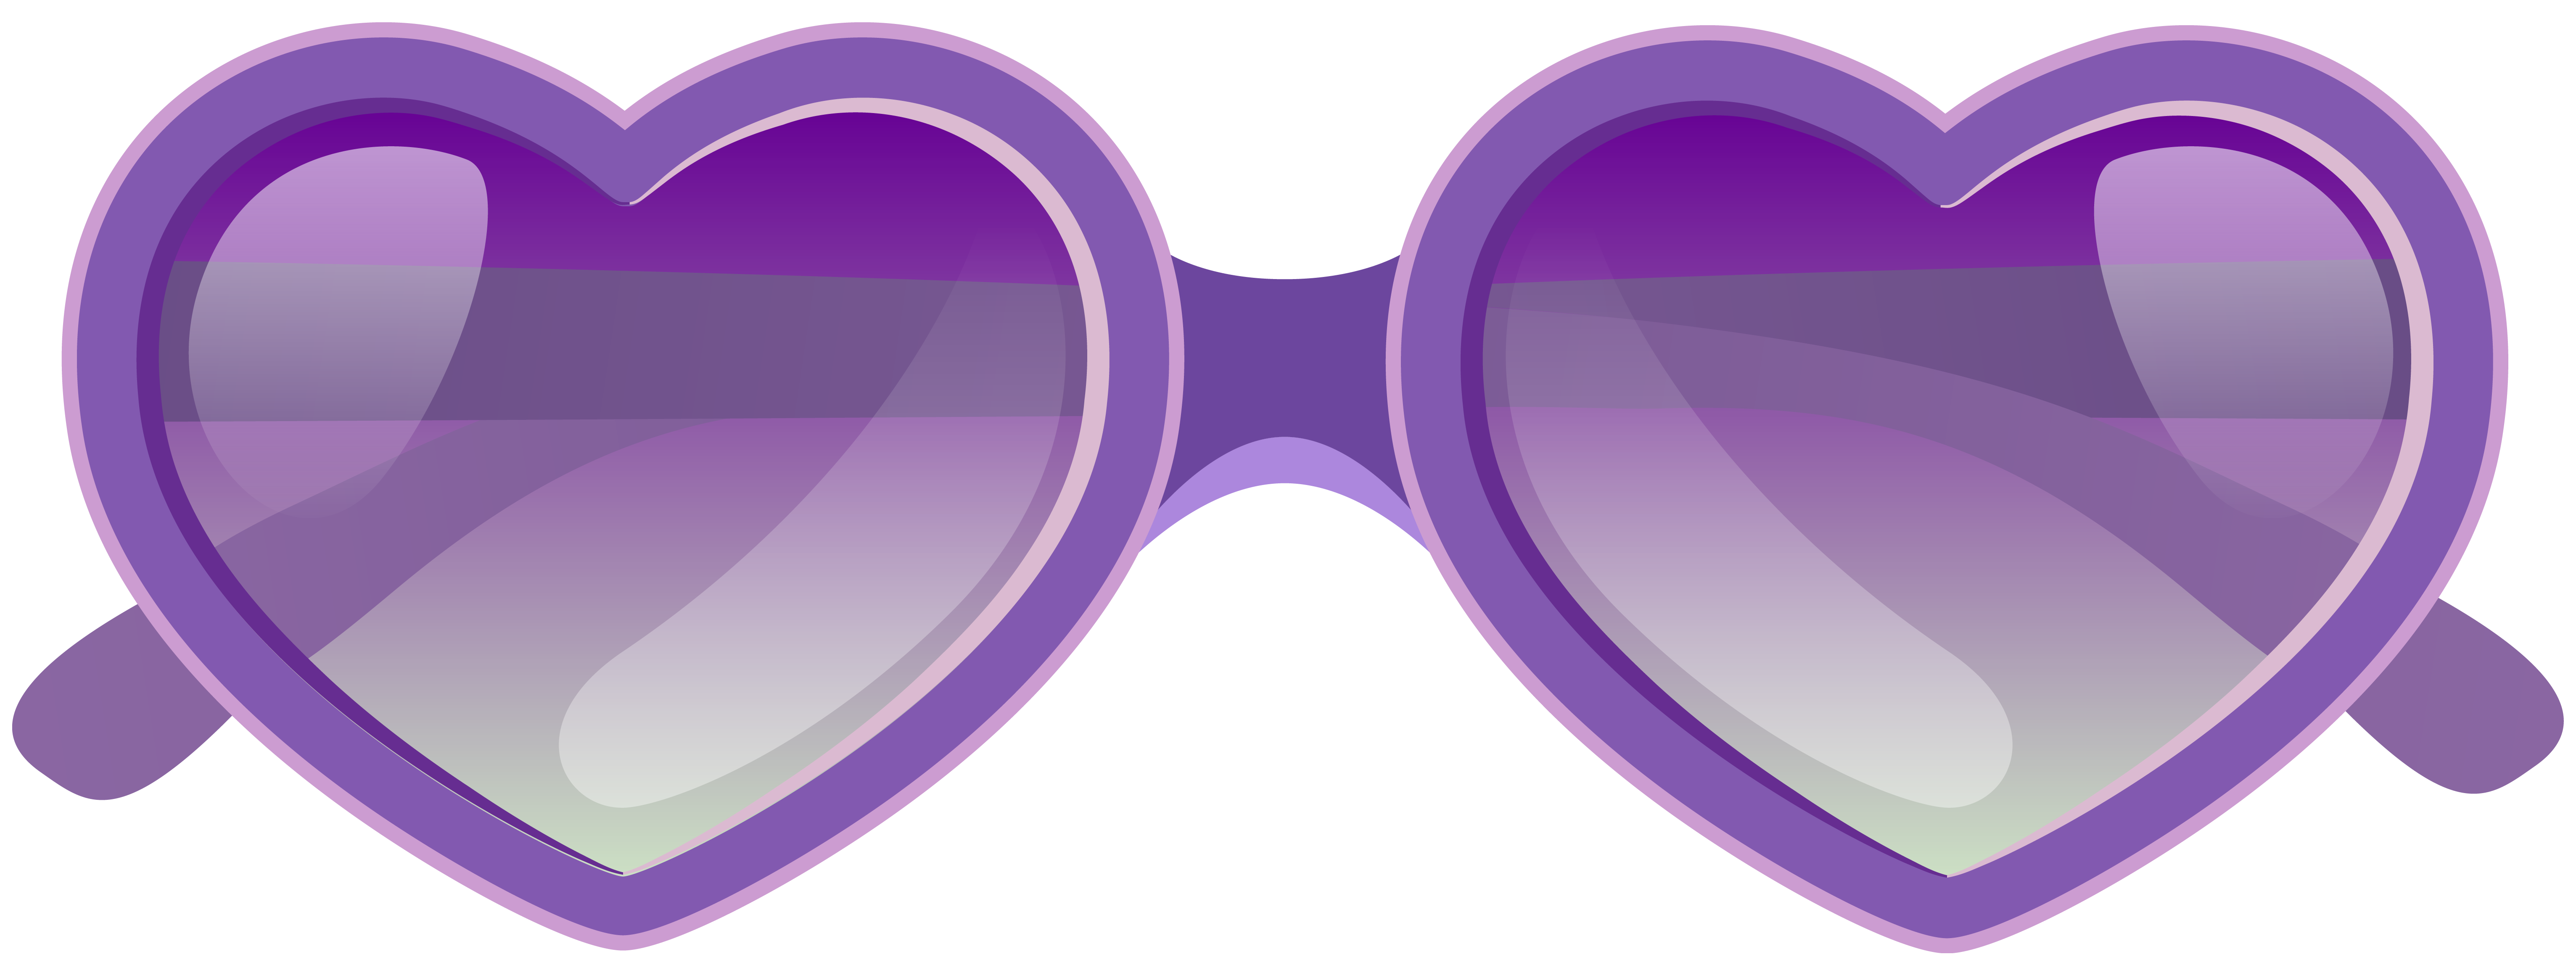 Nerd glasses clipart with apple clip art freeuse download Purple Heart Sunglasses PNG Clipart Image | Gallery Yopriceville ... clip art freeuse download